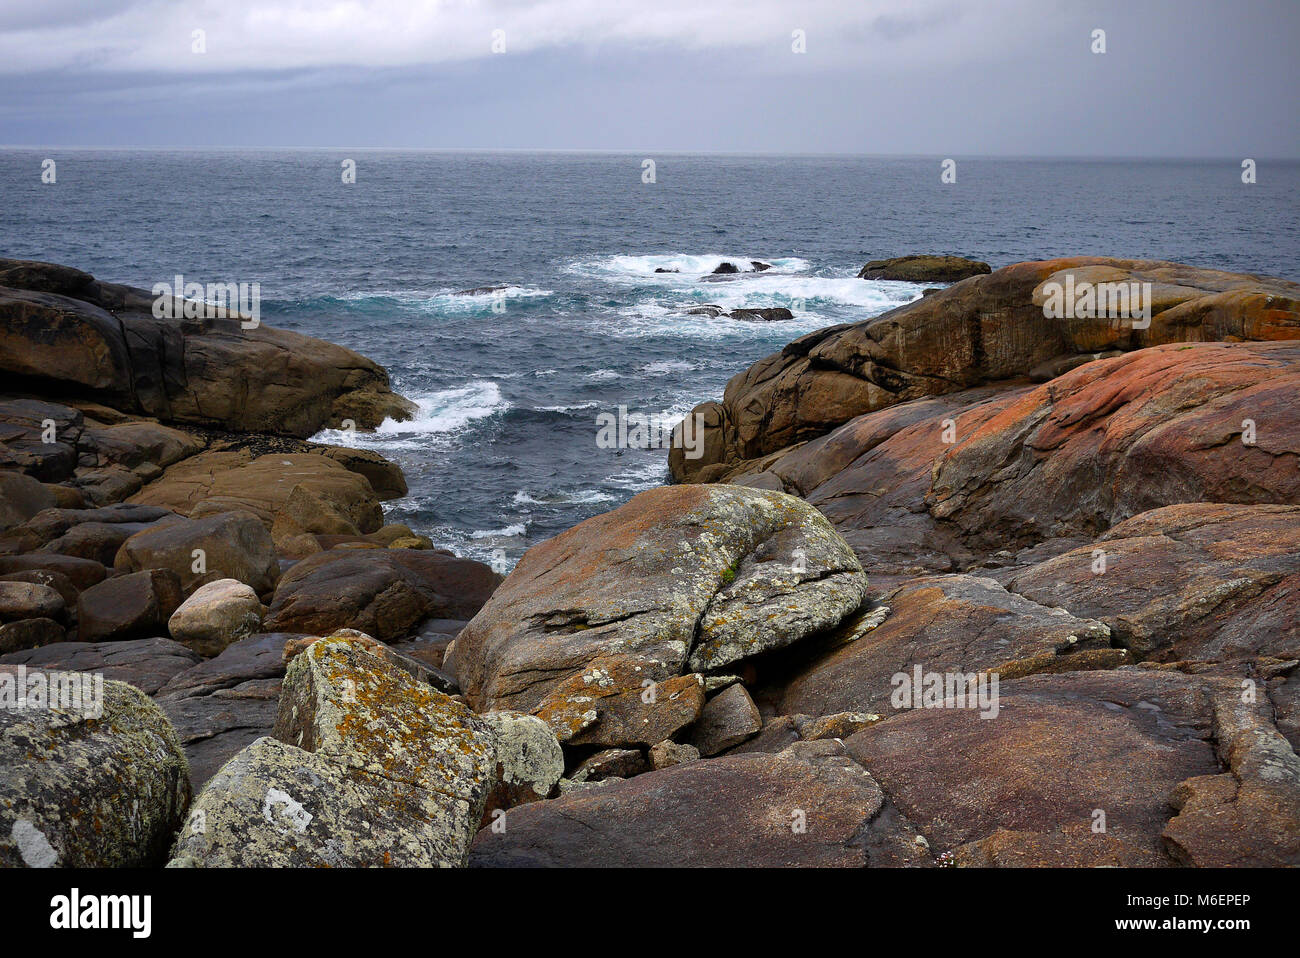 Muxia in Spain. The West coast point reached after Santiago de Compostela for many pilgrims or peregrinos. - Stock Image